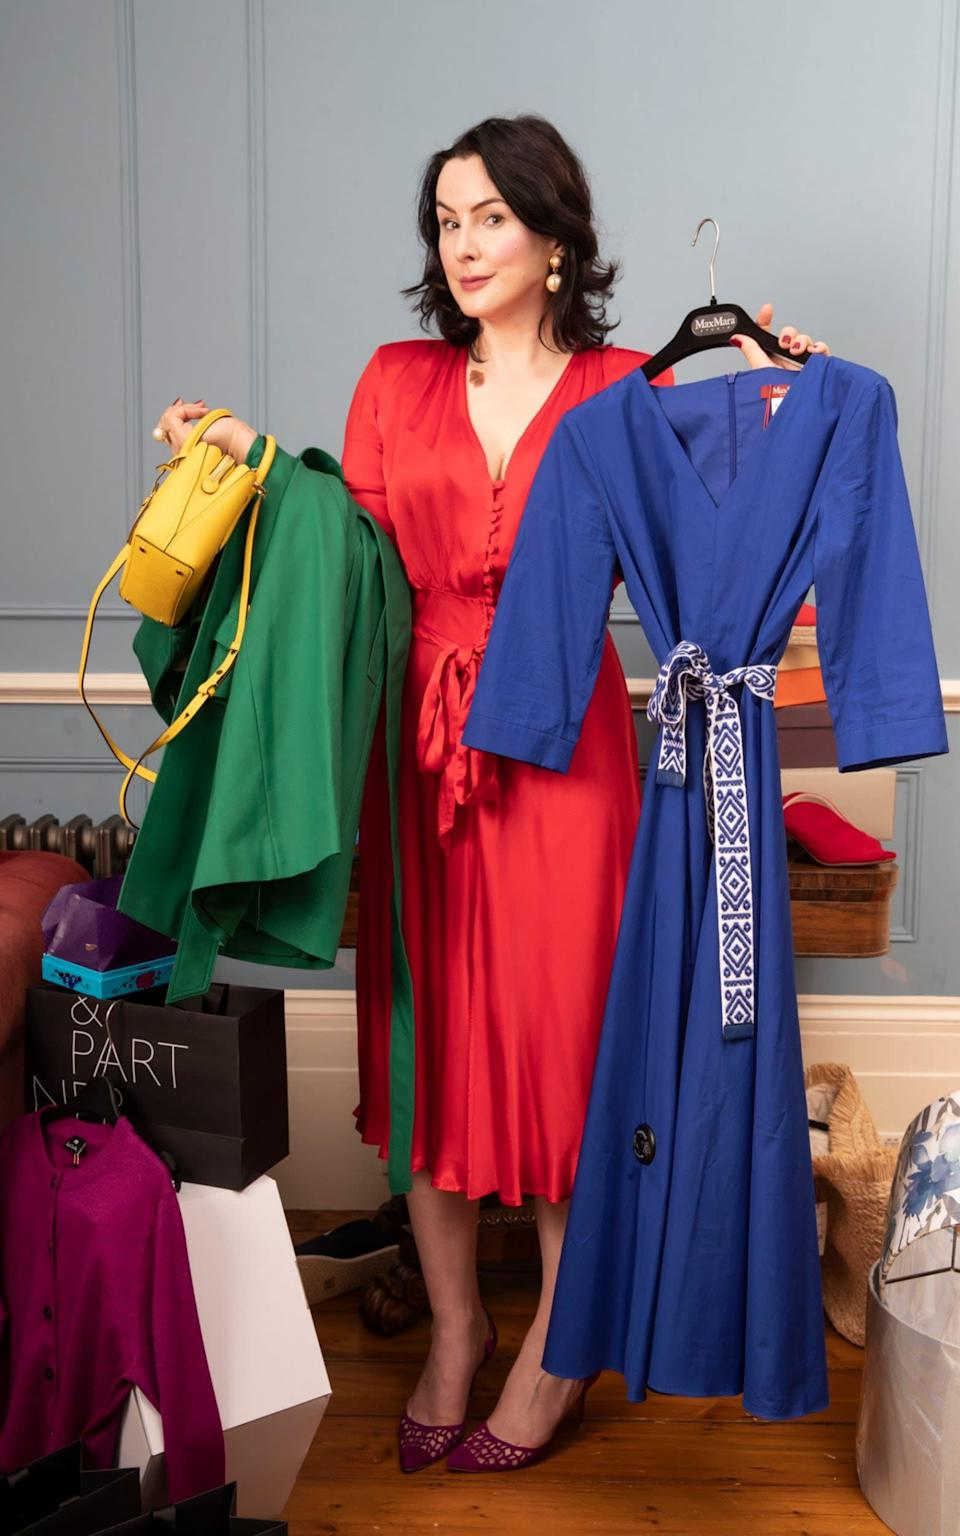 Hannah Betts, with her buys from a virtual personal shopping appointment